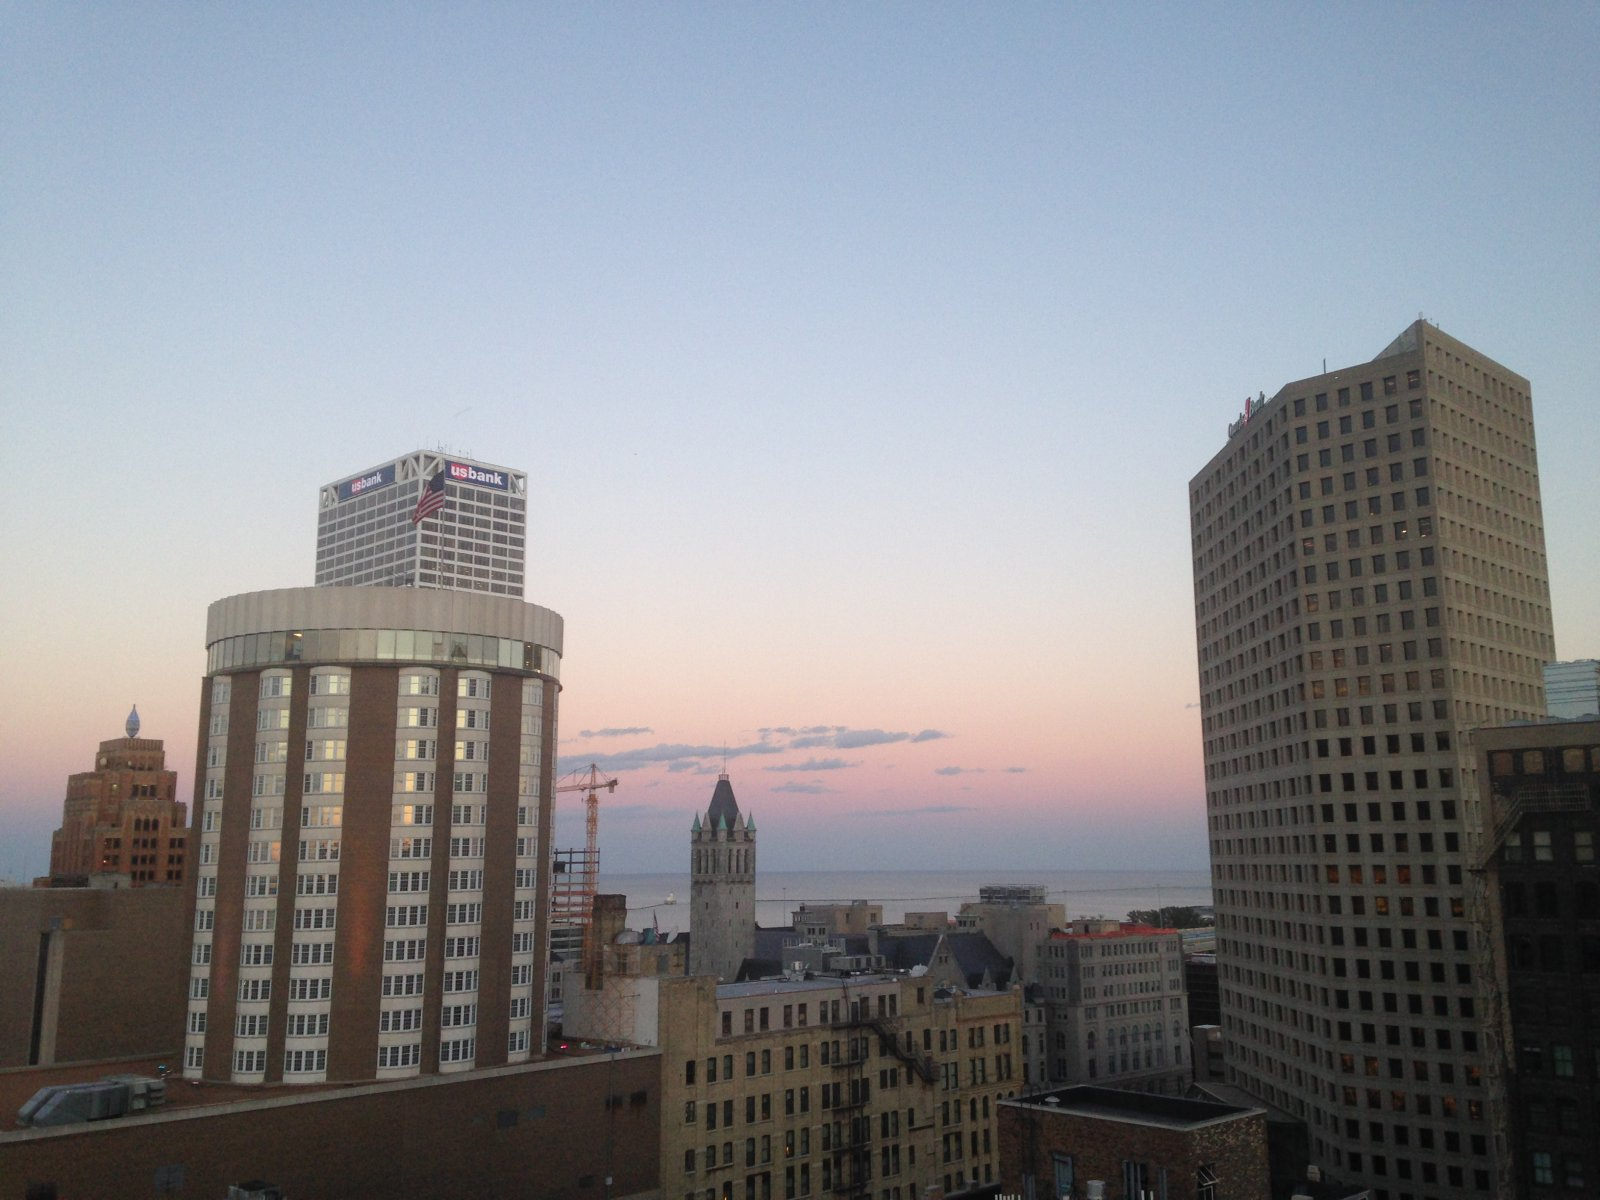 The view from the top of the Milwaukee Athletic Club.